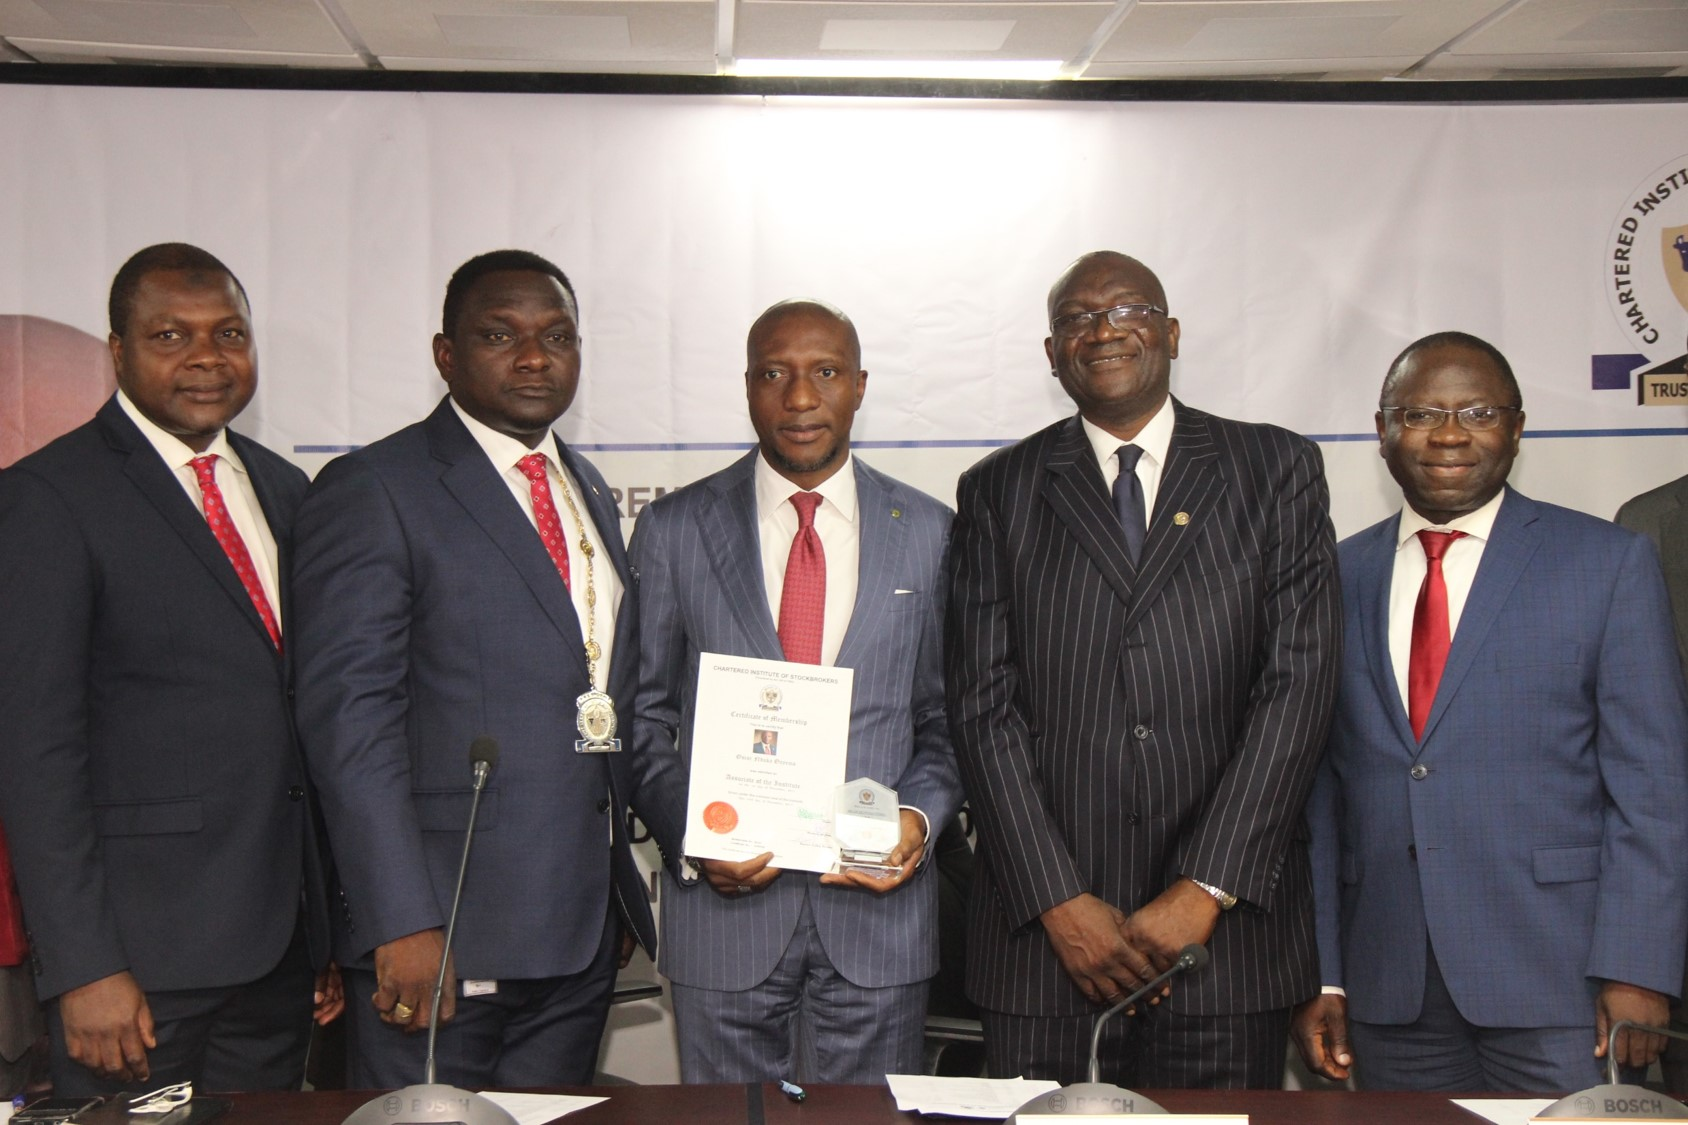 (Photo News) Stockbrokers' Institute Inducts Onyema, CEO Of Nigeria's Exchange As Member